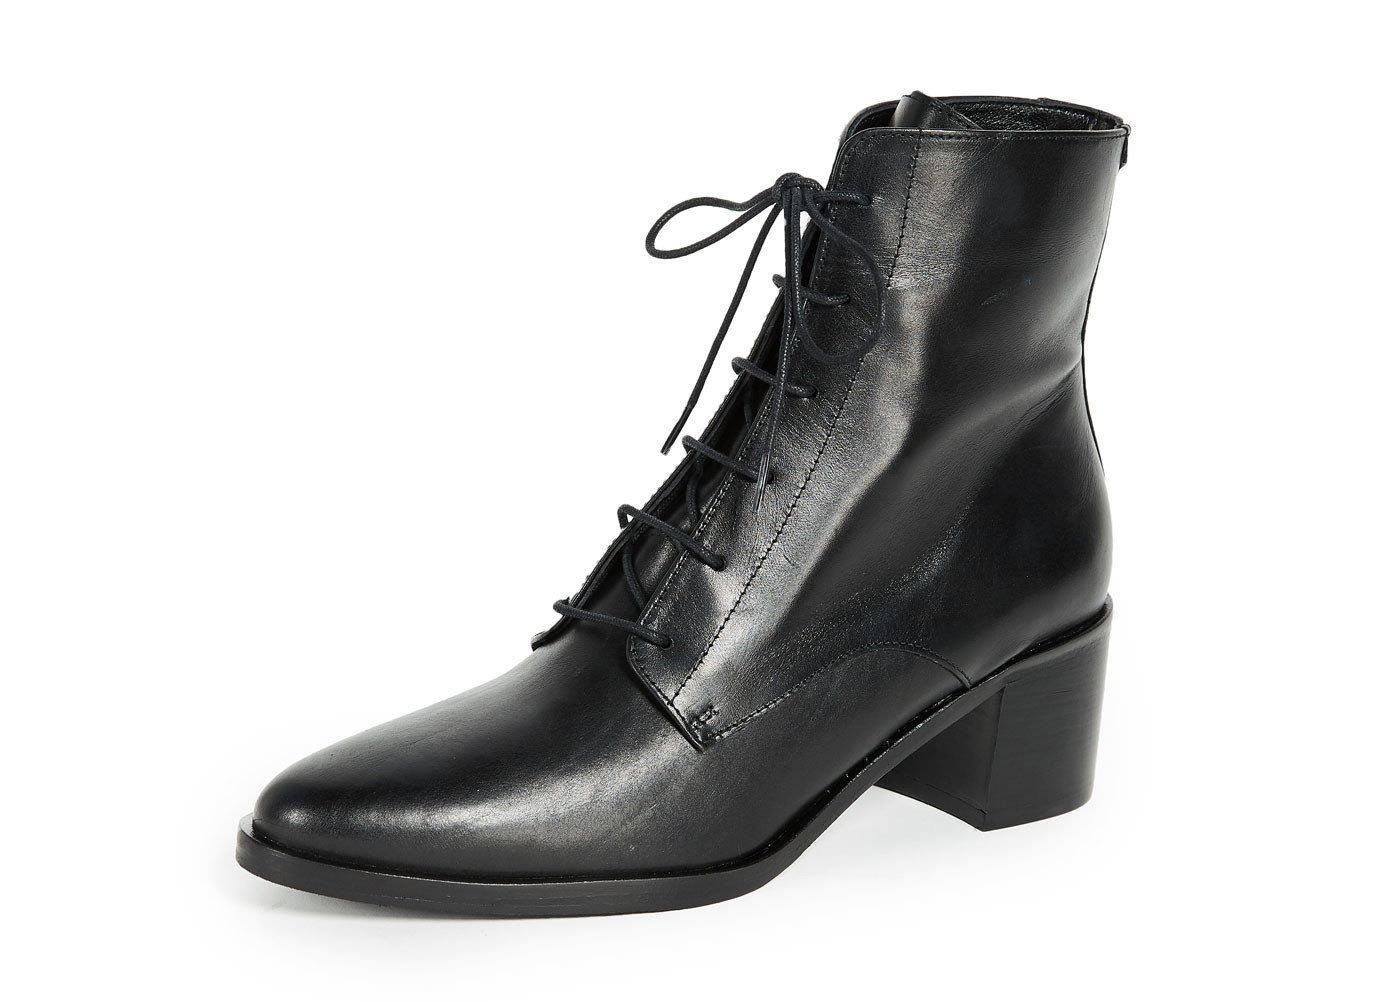 City NYC Style + Design Travel Shop clothing footwear black boot shoe high heeled footwear work boots riding boot walking shoe feet